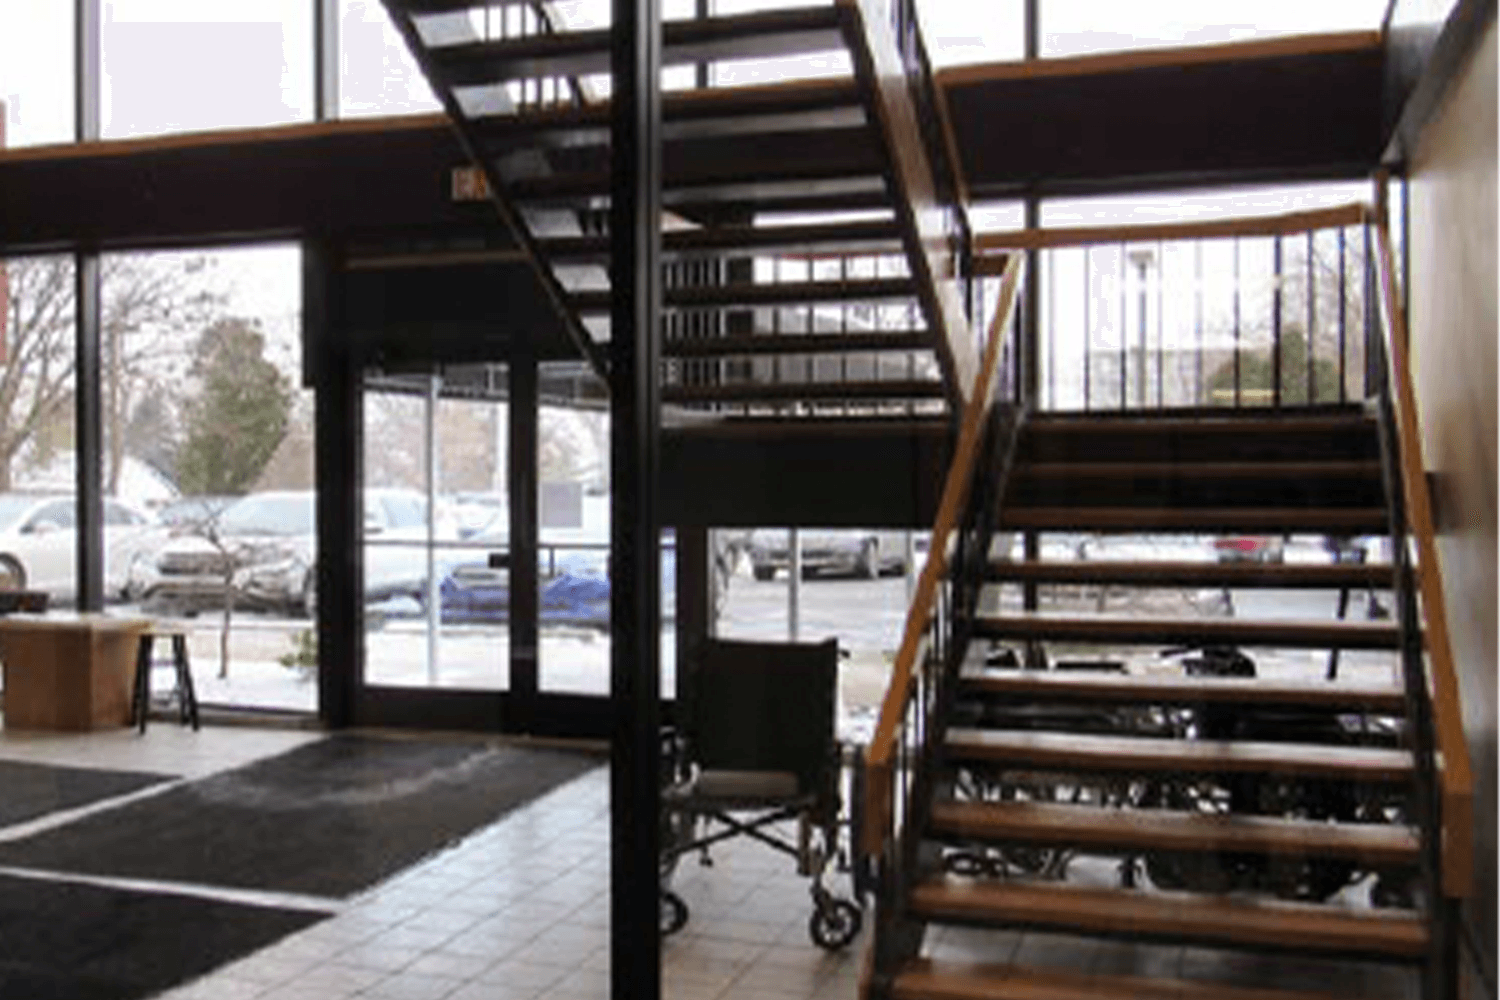 view of a stairway in a lobby area